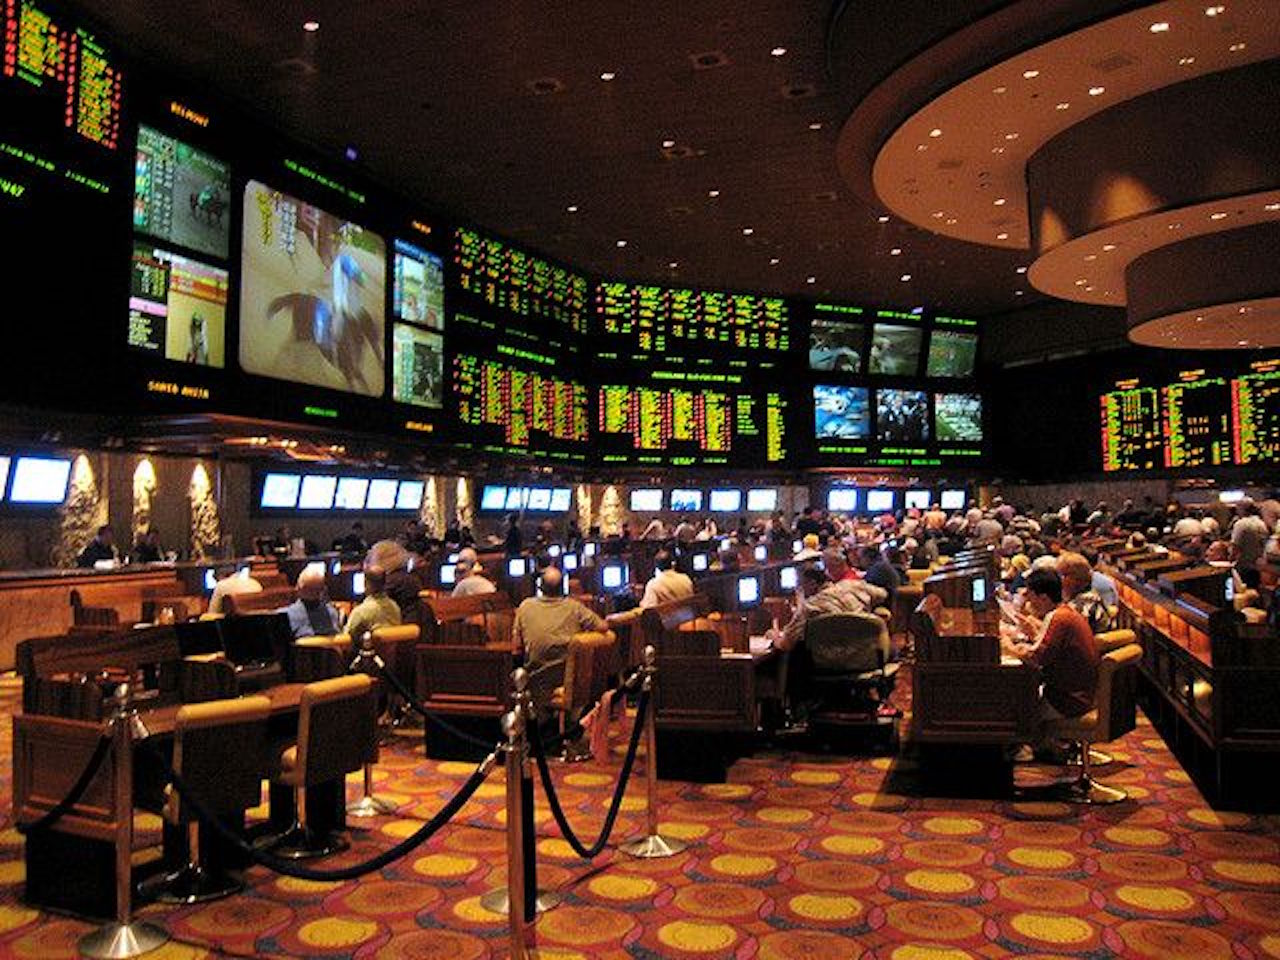 Washington tribal casinos get approval for sports betting